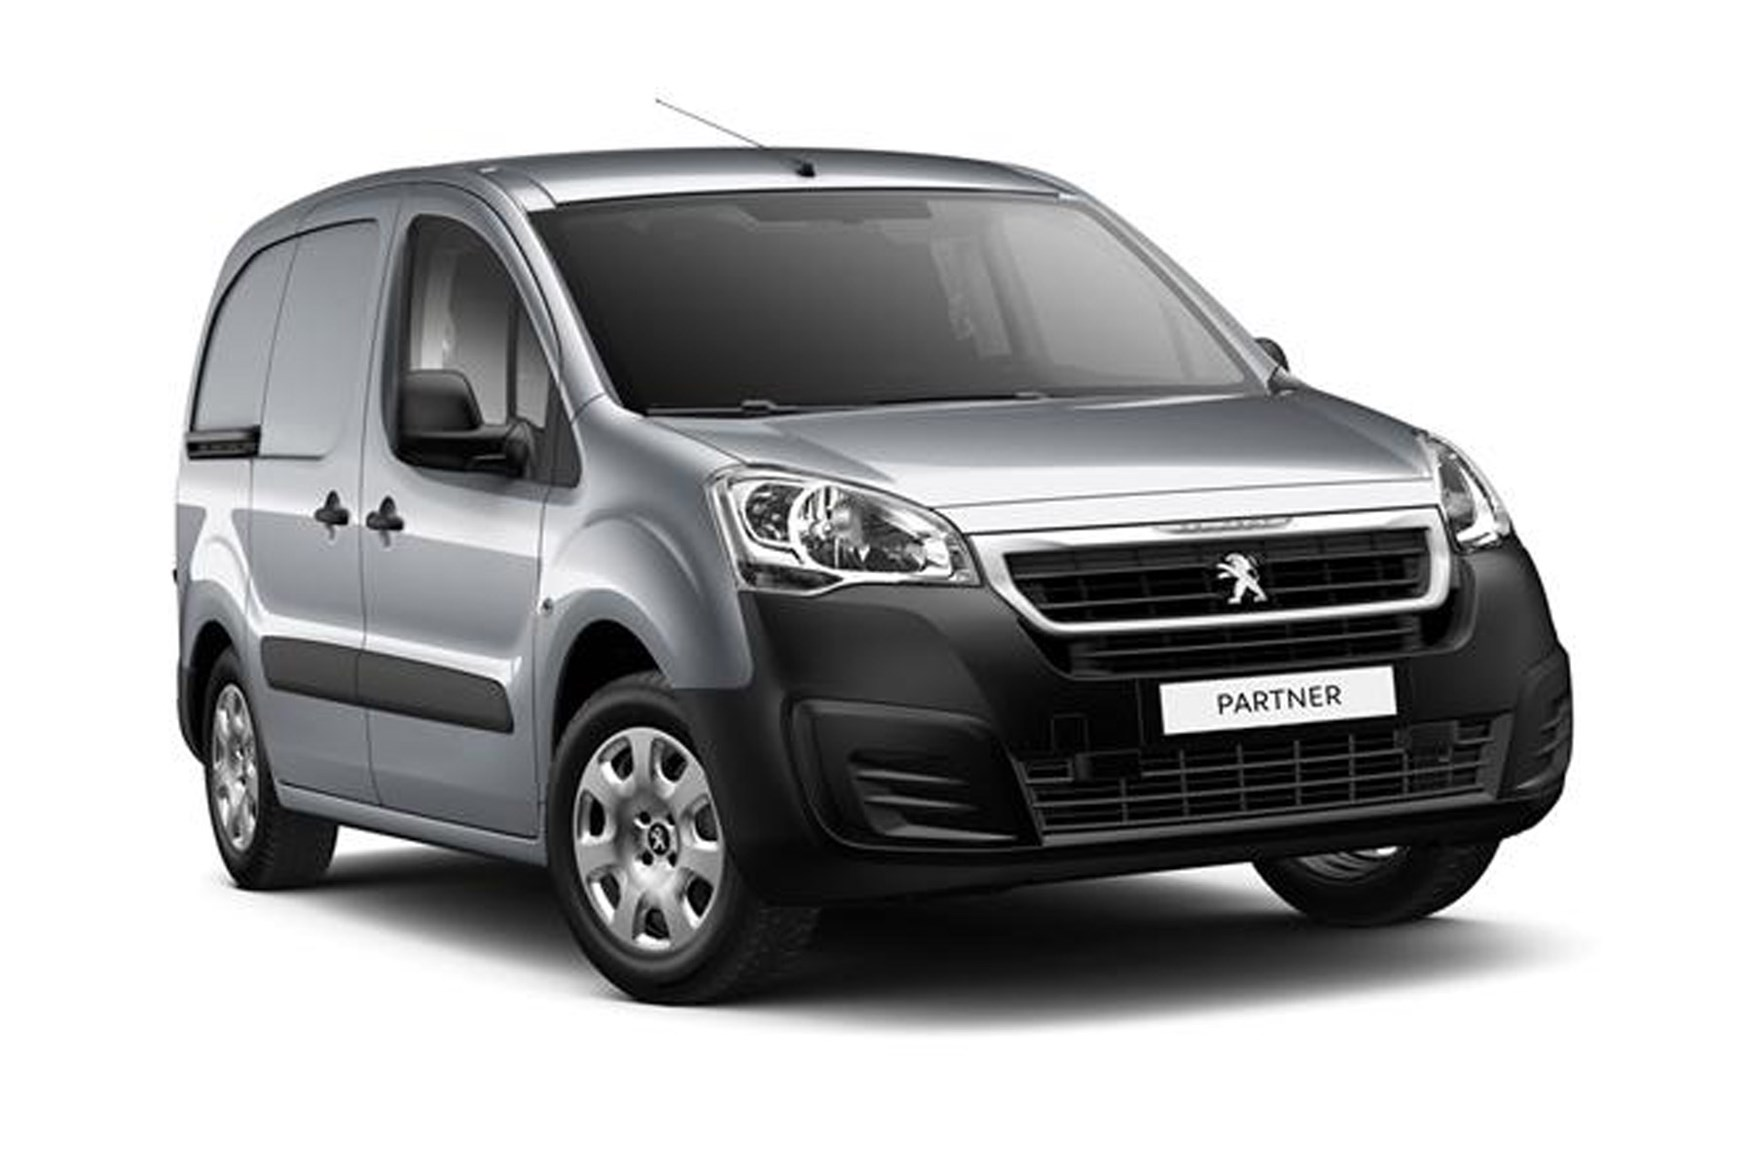 Peugeot Partner full review on Parkers Vans - 2015 facelift exterior